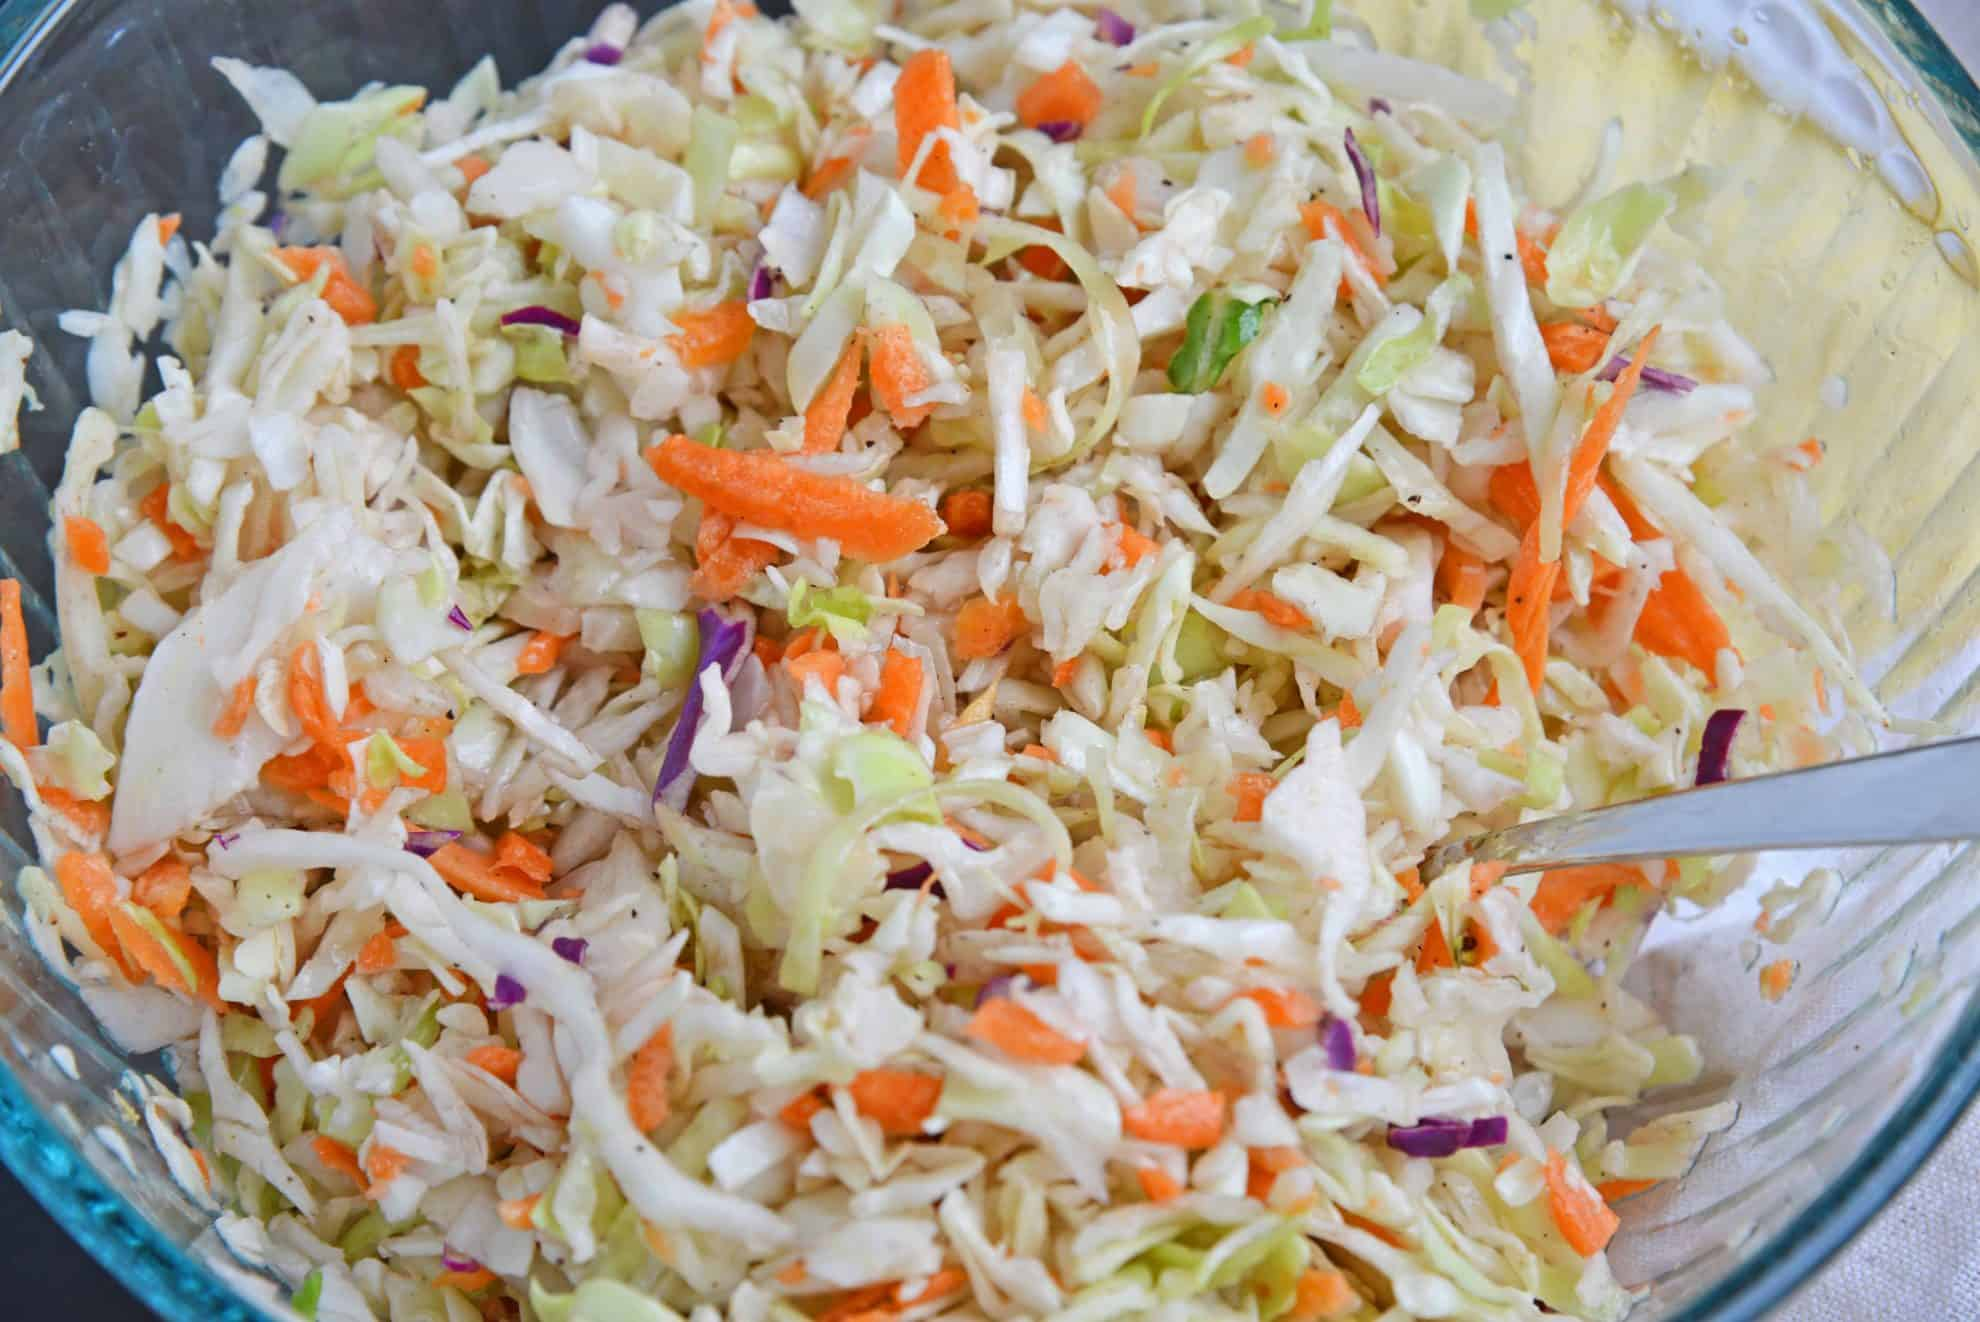 Cabbage slaw in a mixing bowl